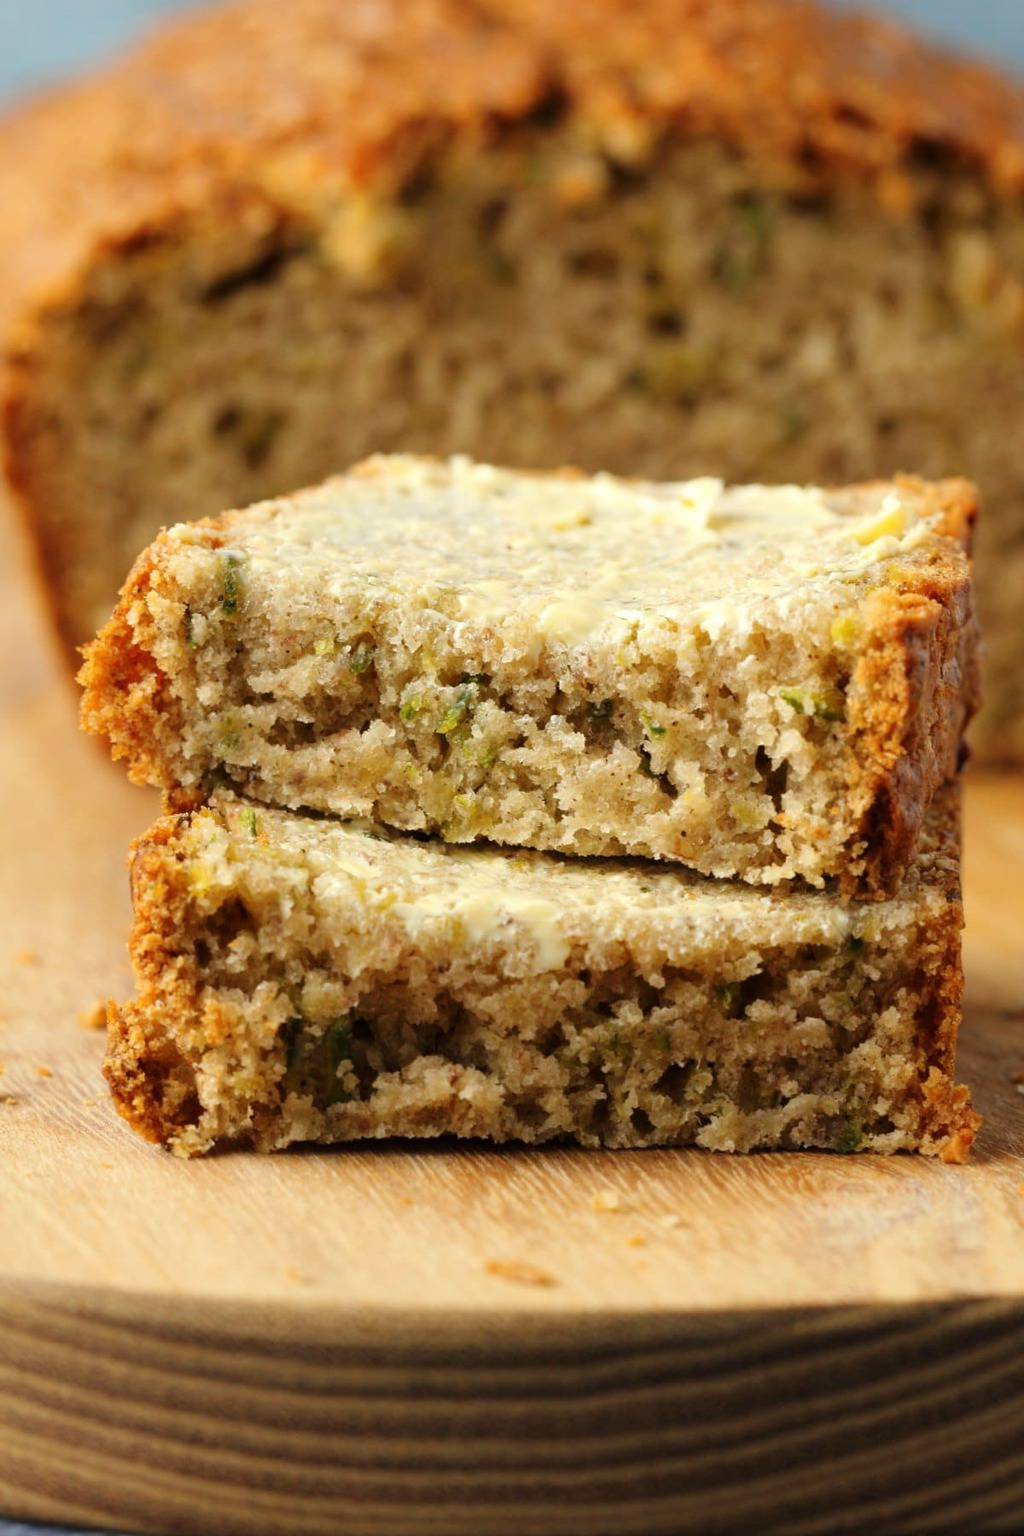 Vegan zucchini bread buttered and sliced in half.